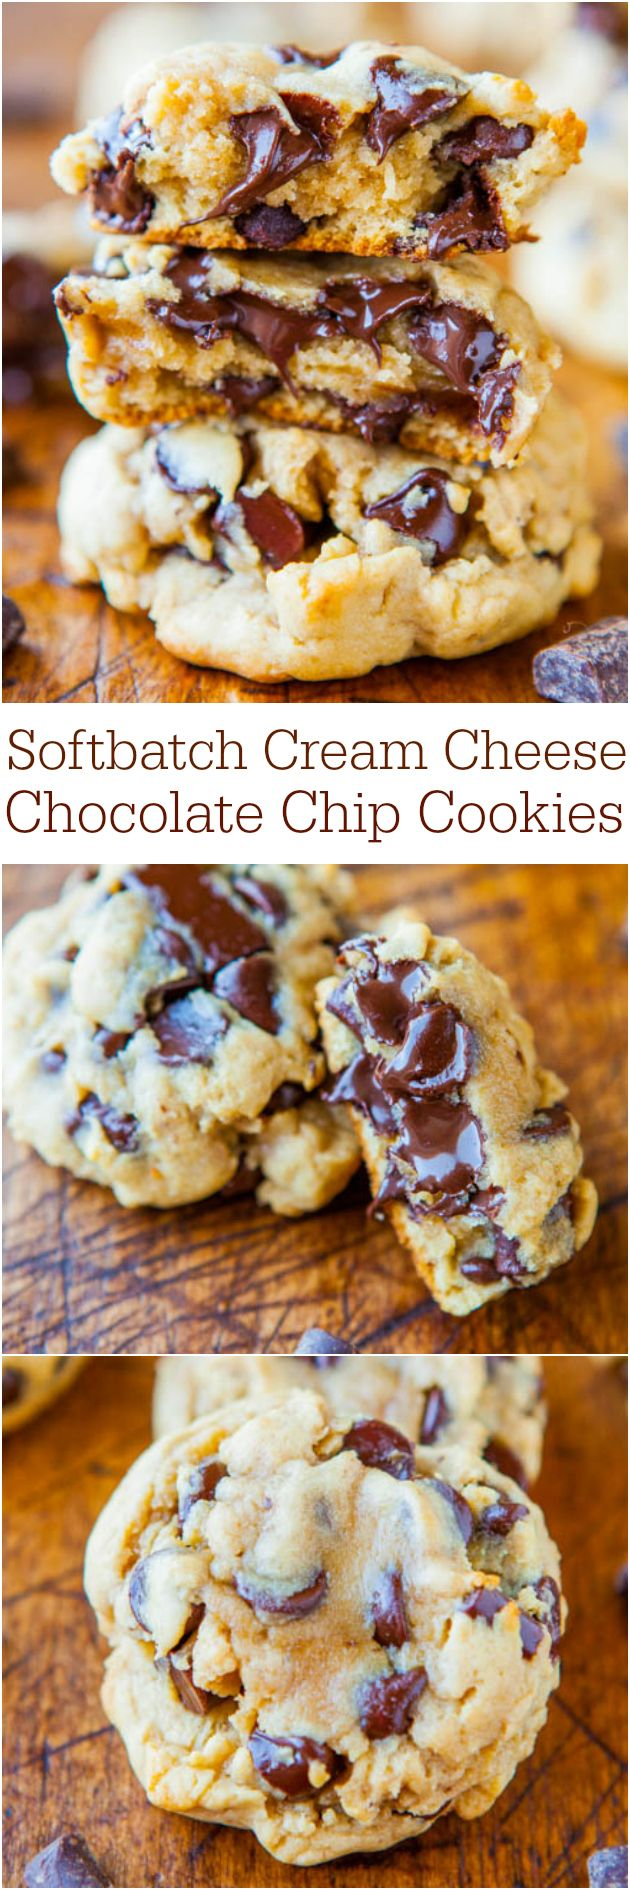 Softbatch Cream Cheese Chocolate Chip Cookies ~ Move over butter, cream cheese makes these cookies thick and super soft!